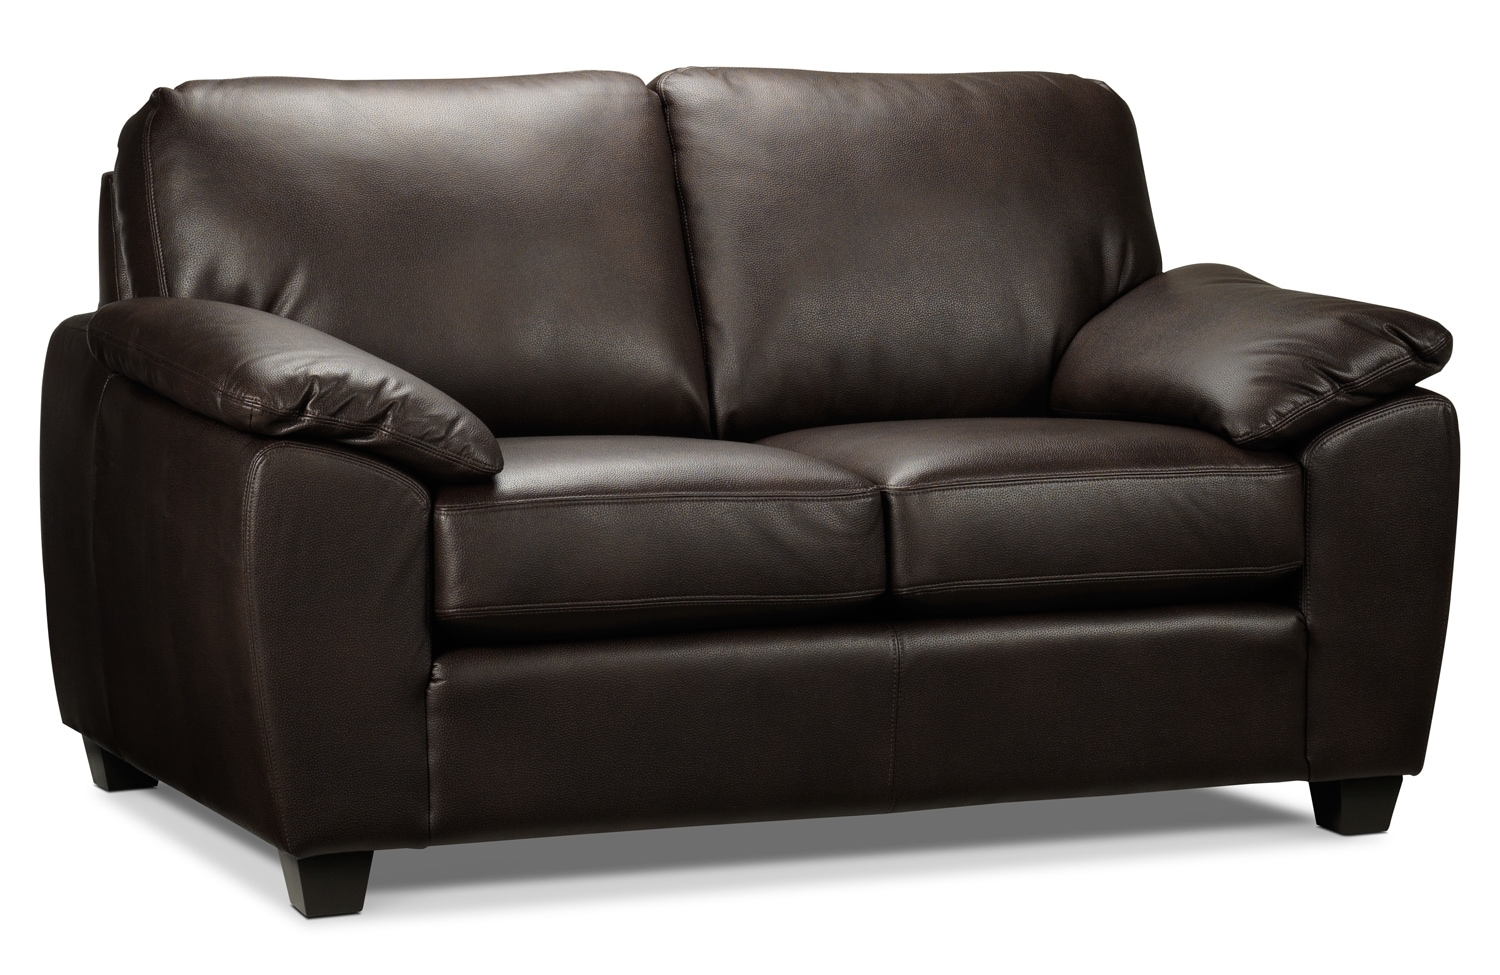 Living Room Furniture - Trent Loveseat - Espresso